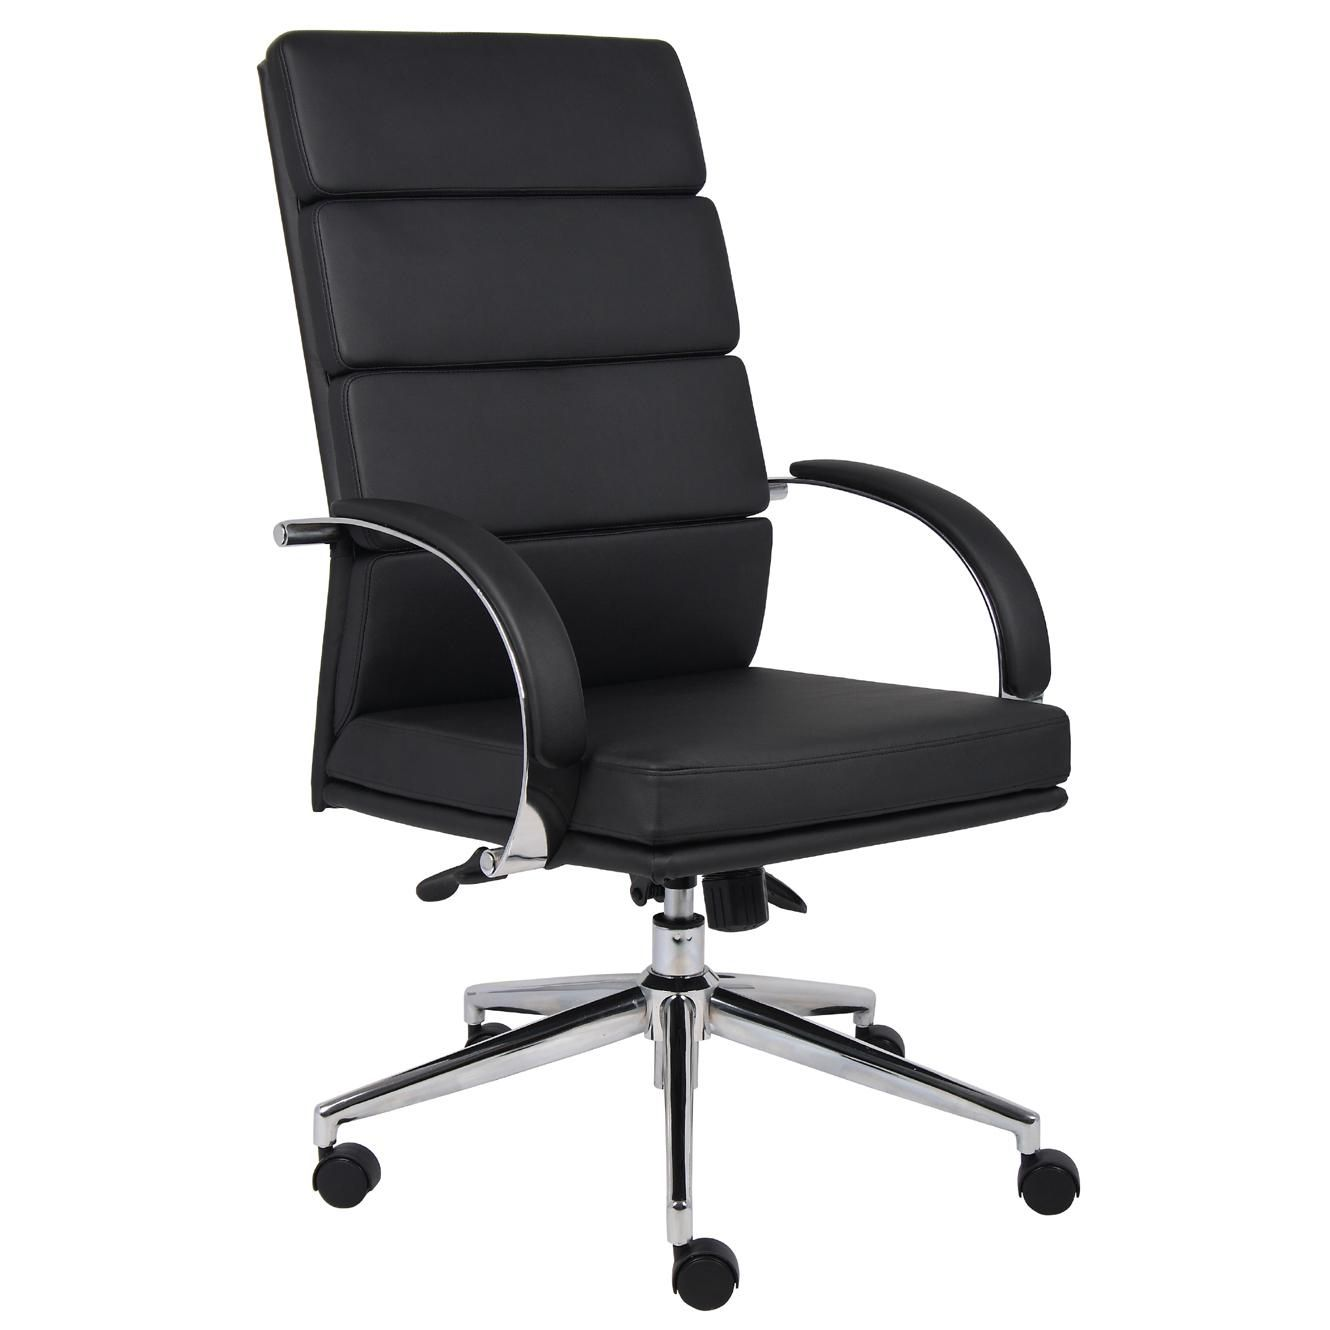 20+ Premium Office Chairs - Rustic Home Office Furniture Check more ...